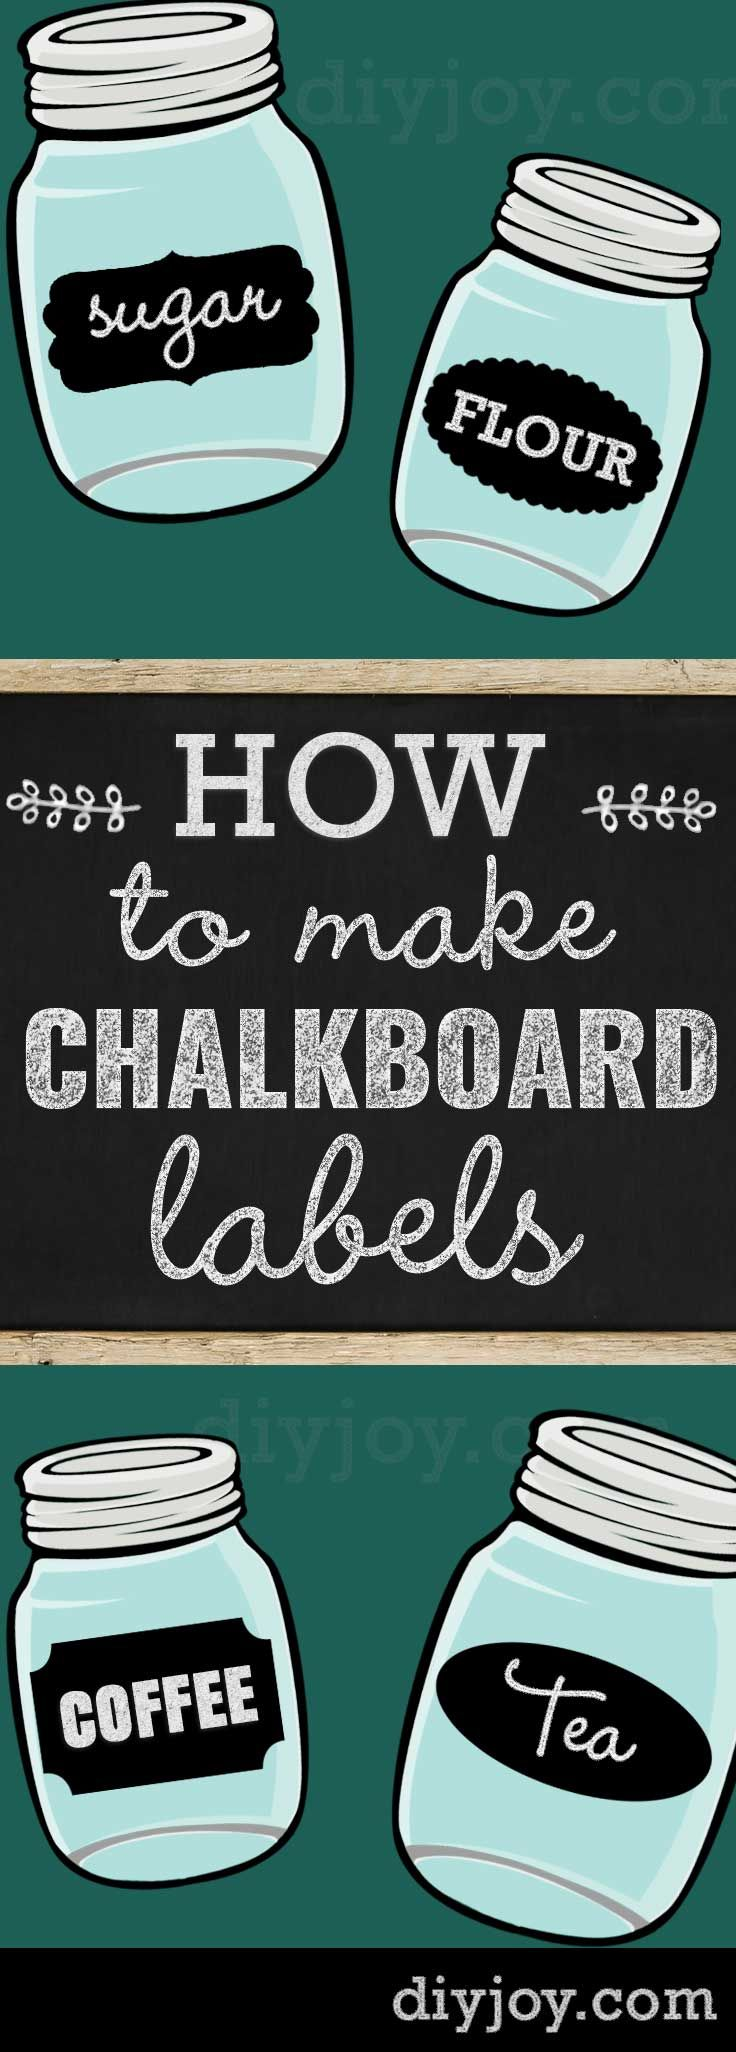 DIY Chalkboard Paint Ideas for Furniture Projects, Home Decor, Kitchen, Bedroom, Signs and Crafts for Teens. | Chalkboard Labels